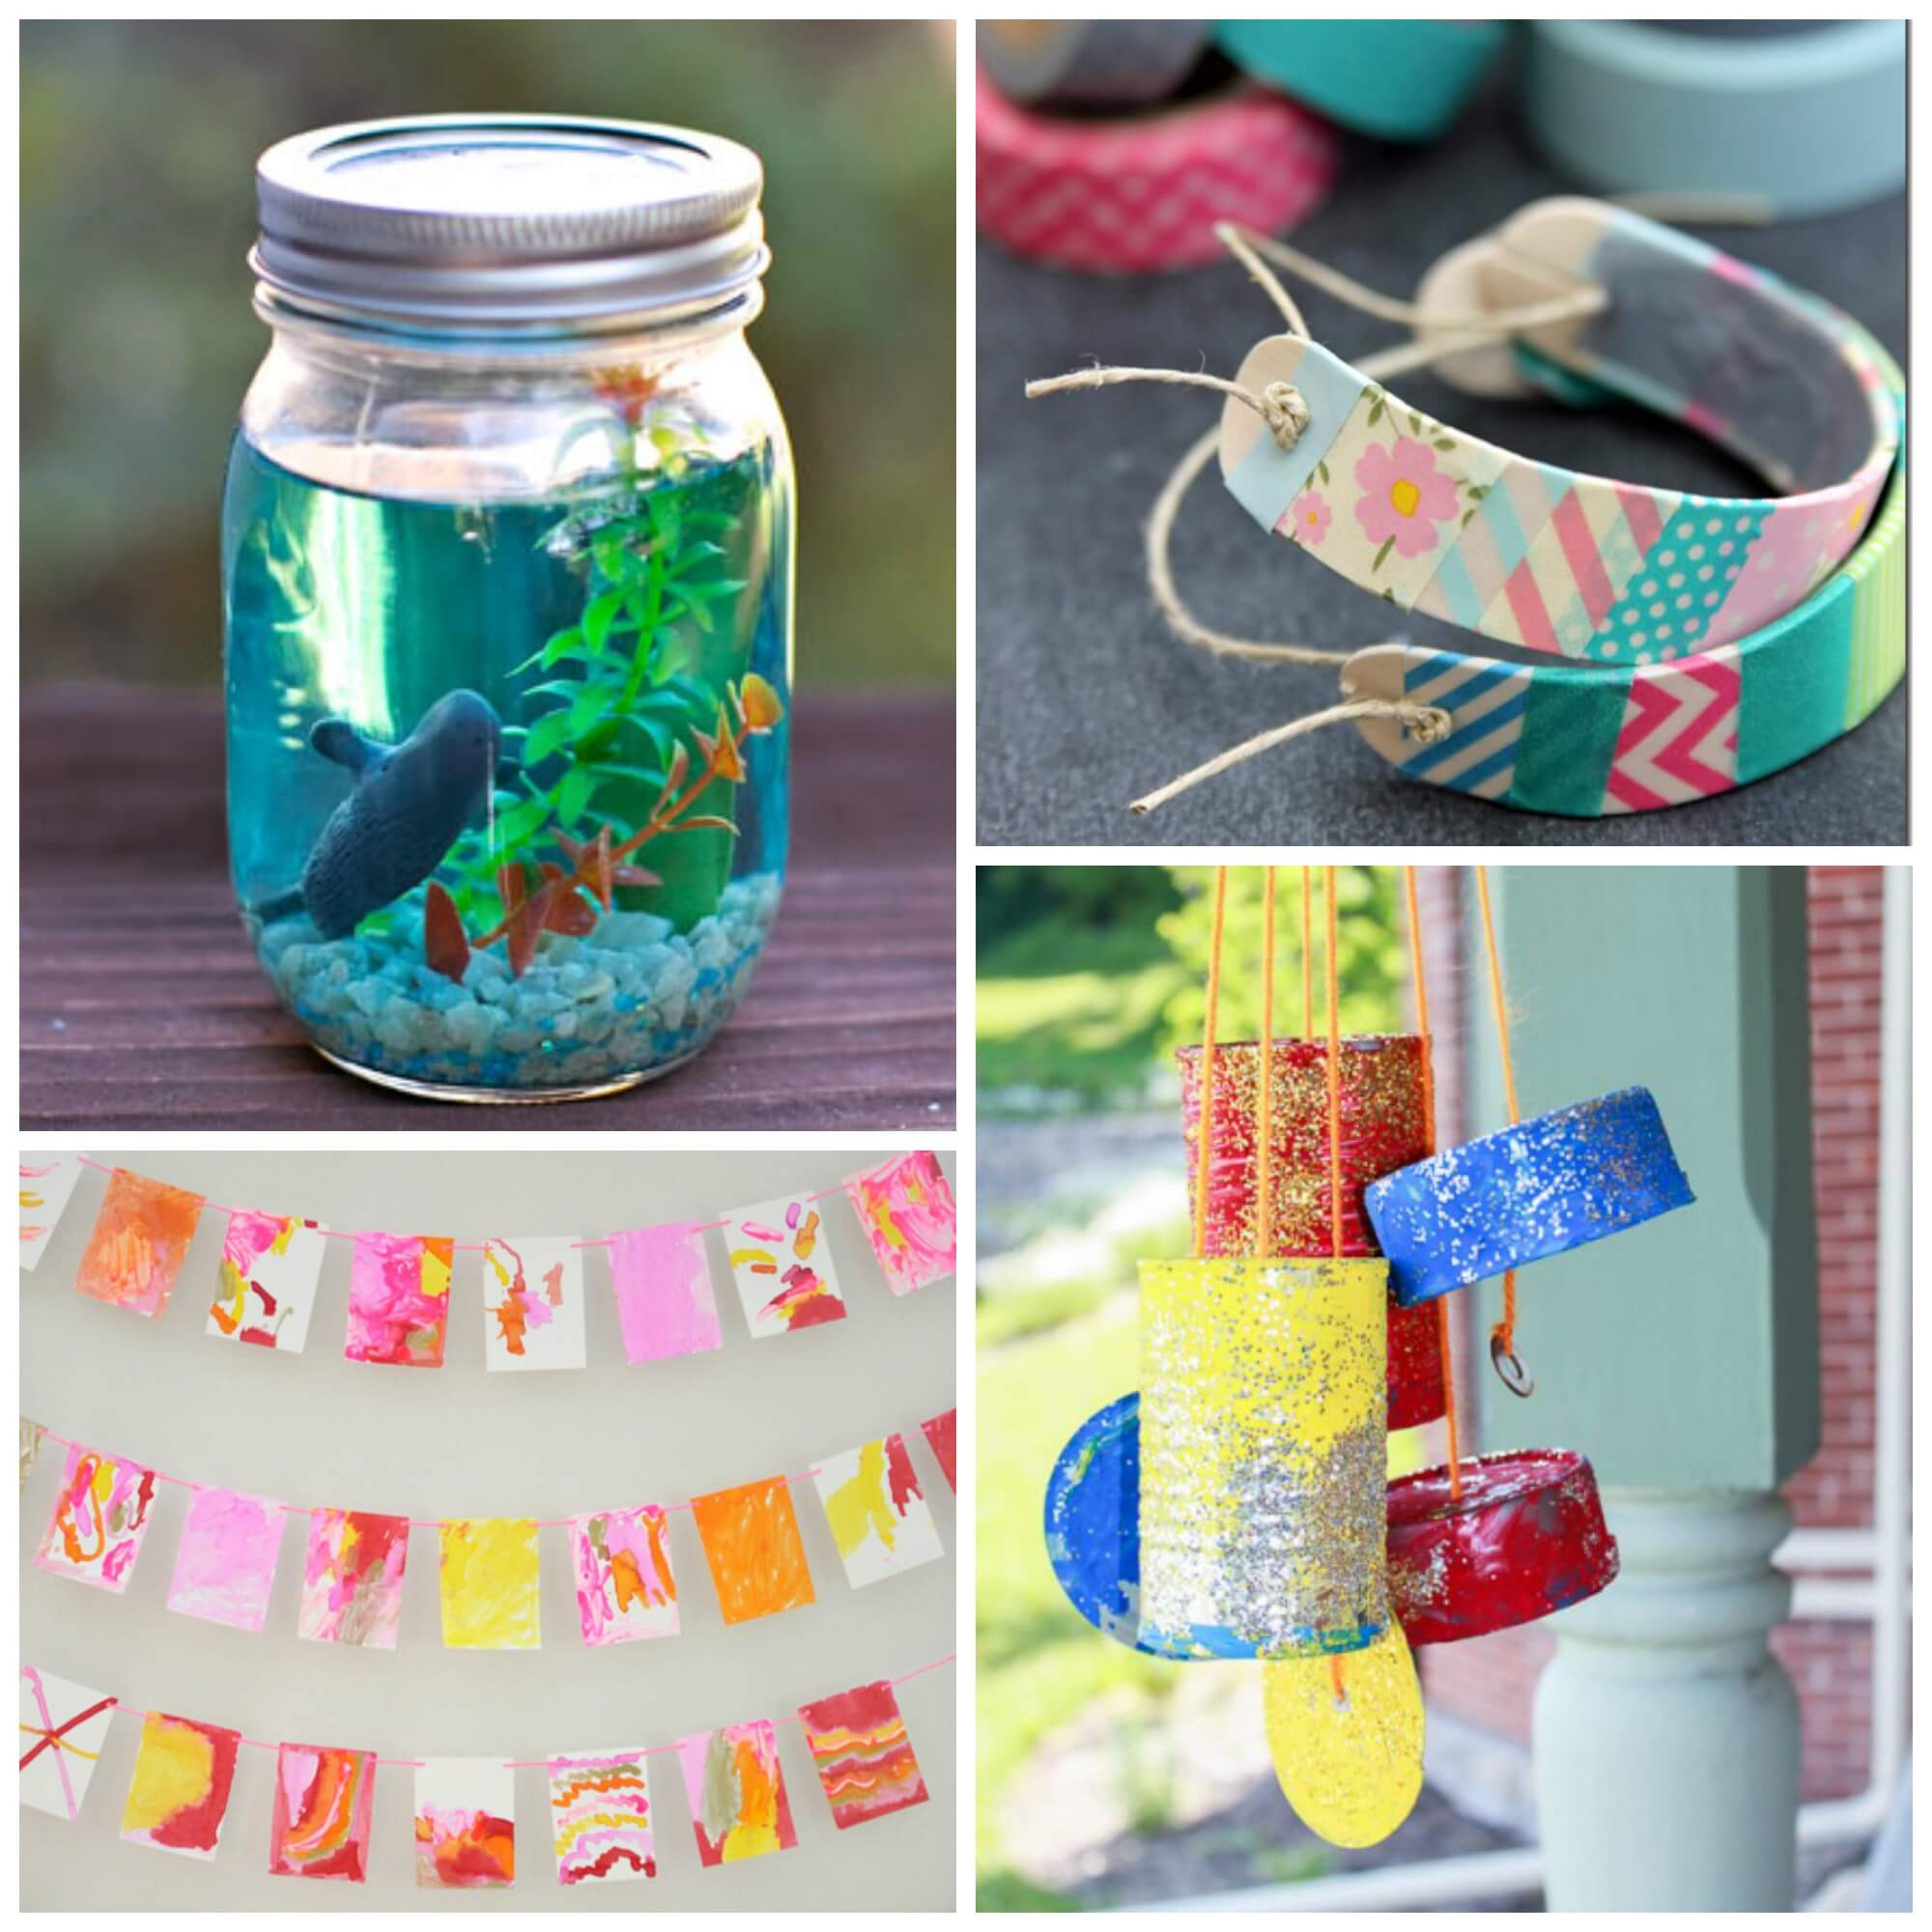 Best ideas about Fun Craft Ideas For Kids . Save or Pin 15 Arts and Crafts for Kids Playdough To Plato Now.